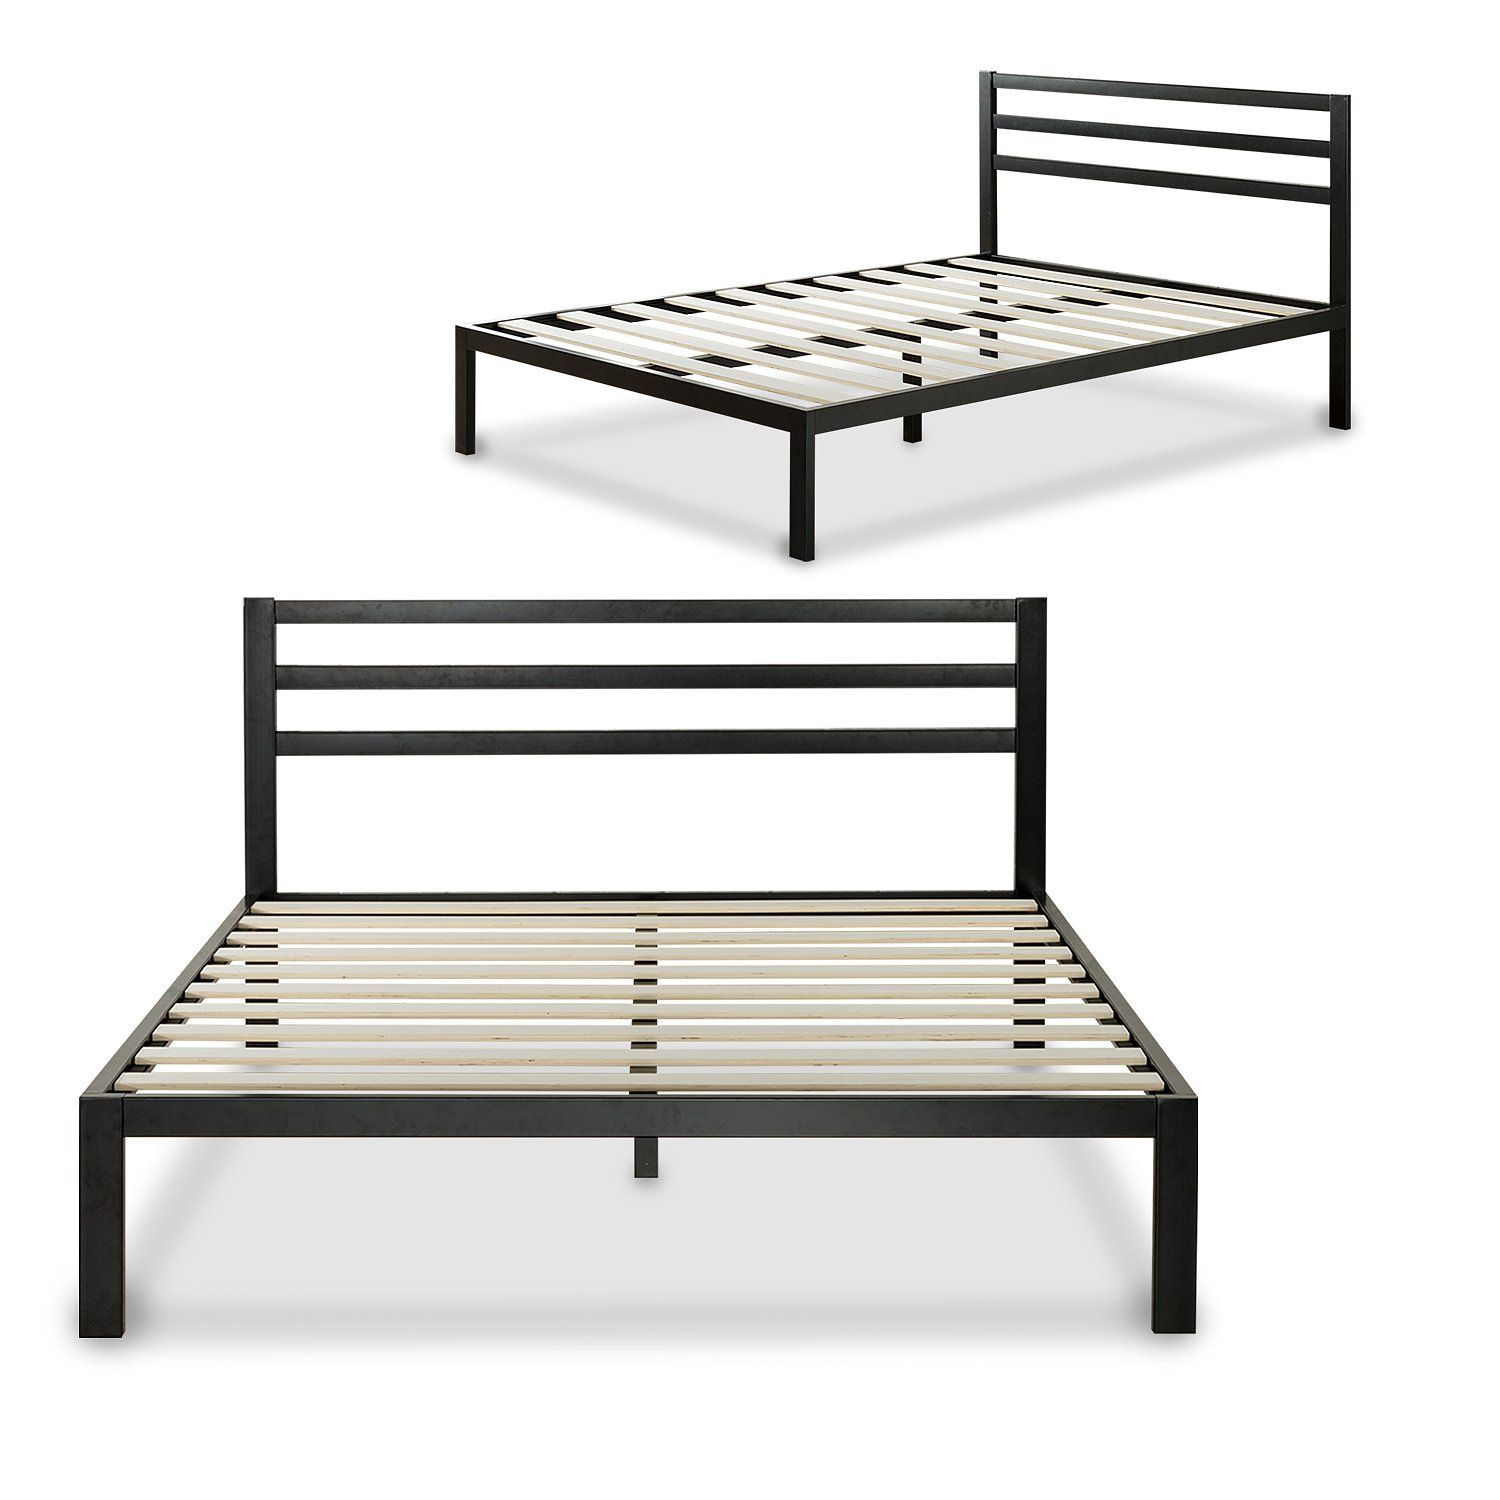 Bedroom  Queen Zinus Modern Studio 14 Inch Platform 3000 Metal Bed Frame  With Mattress Foundation. Bedroom  Queen Zinus Modern Studio 14 Inch Platform 3000 Metal Bed